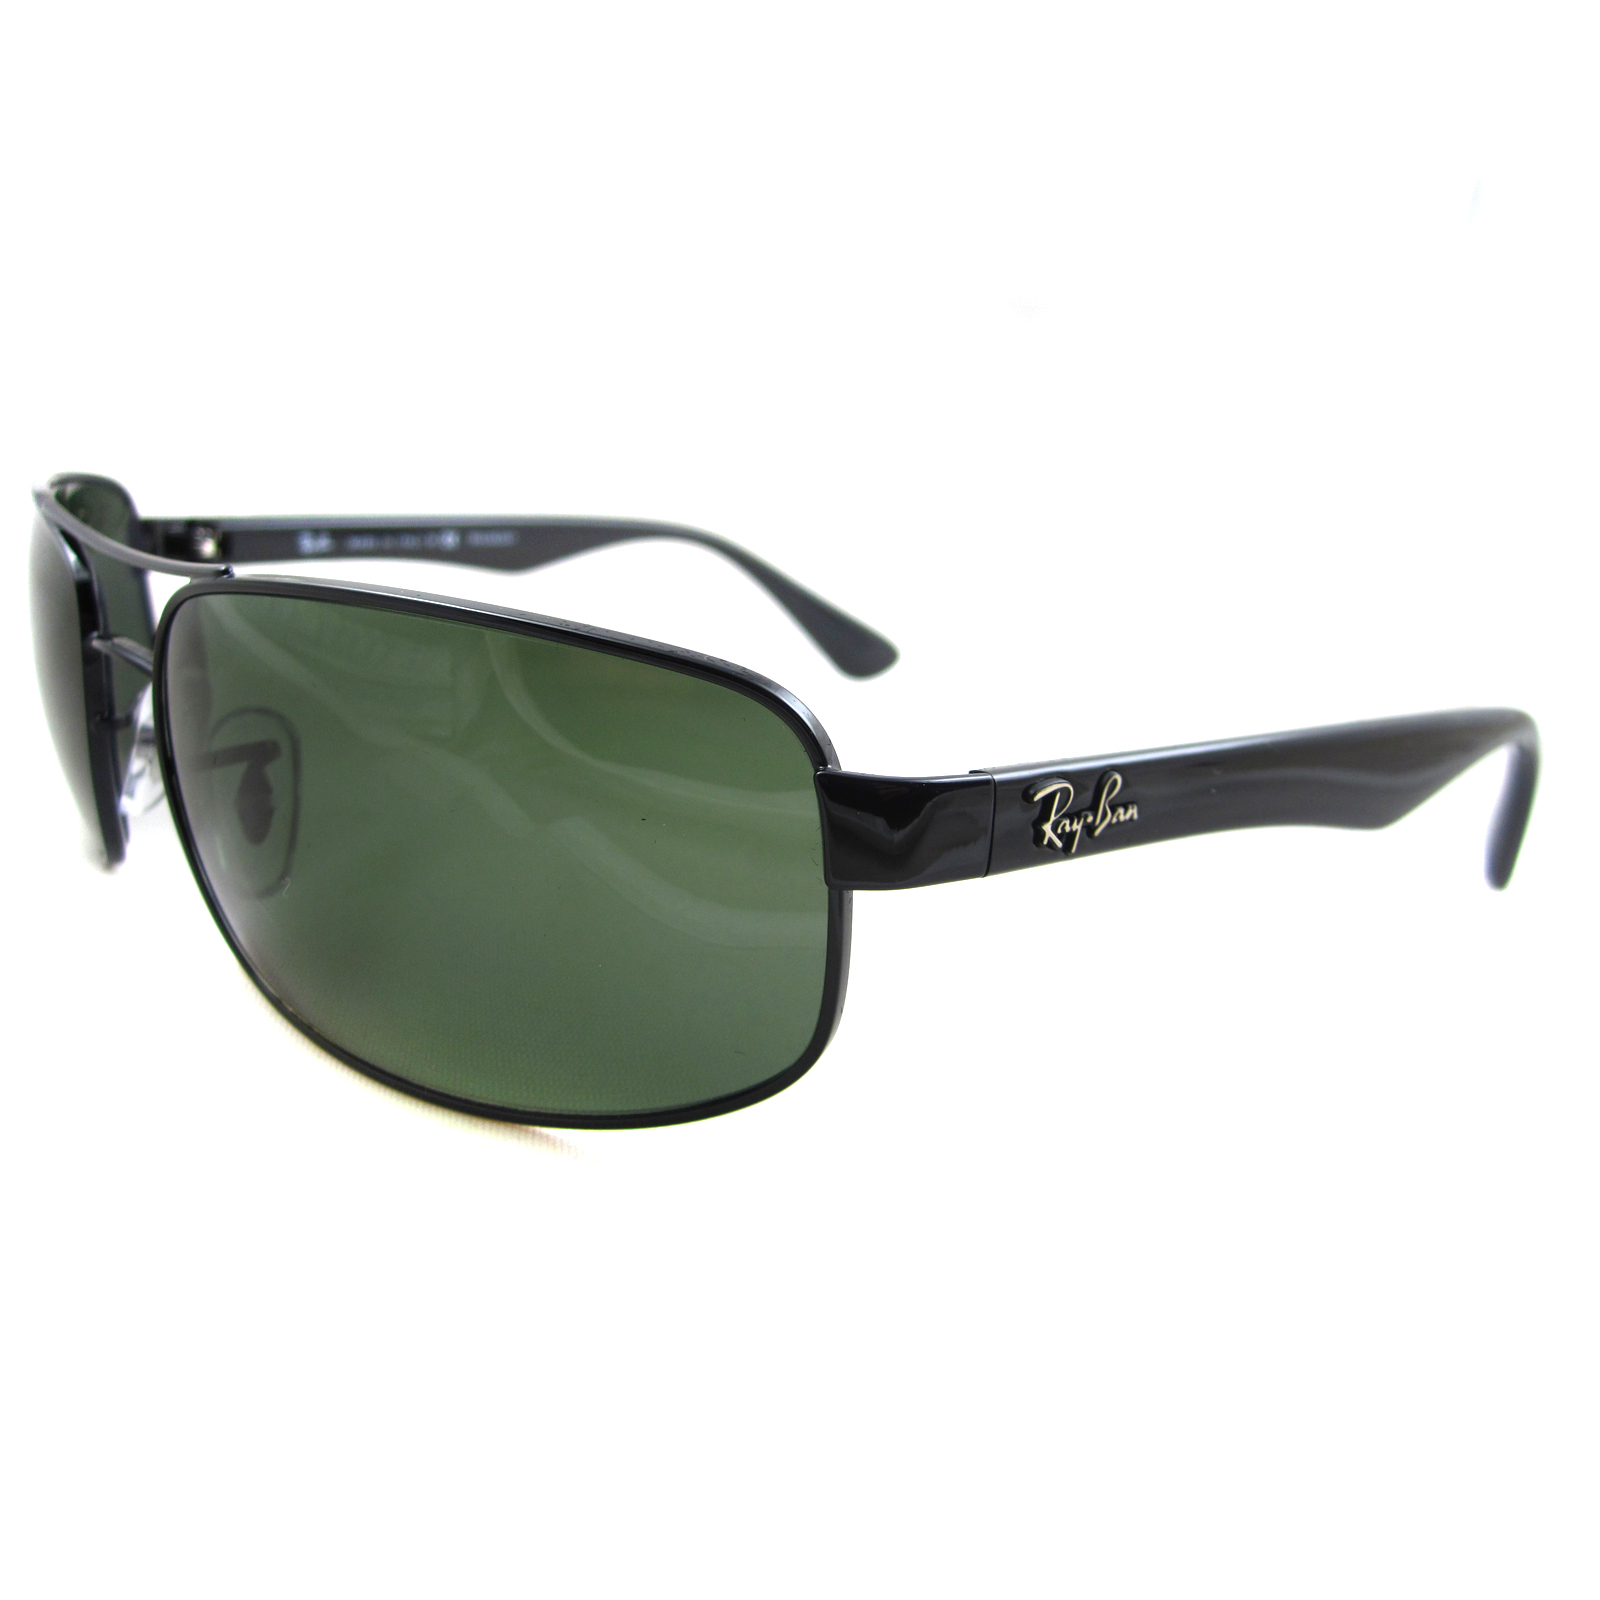 41f6e28cc62 Sentinel Rayban Sunglasses 3445 Black Green Polarized 002 58 64mm